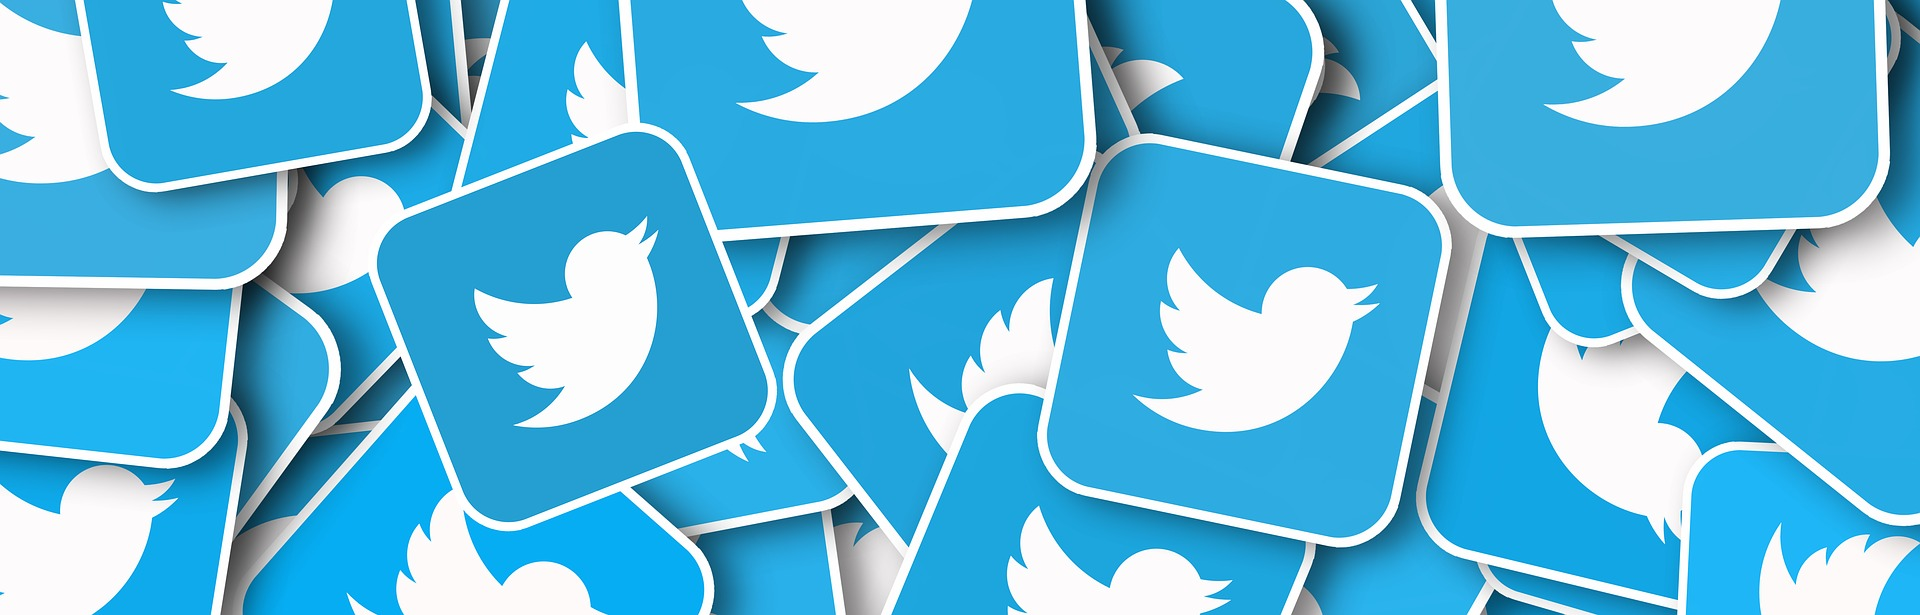 Will Twitter be useful to my business?